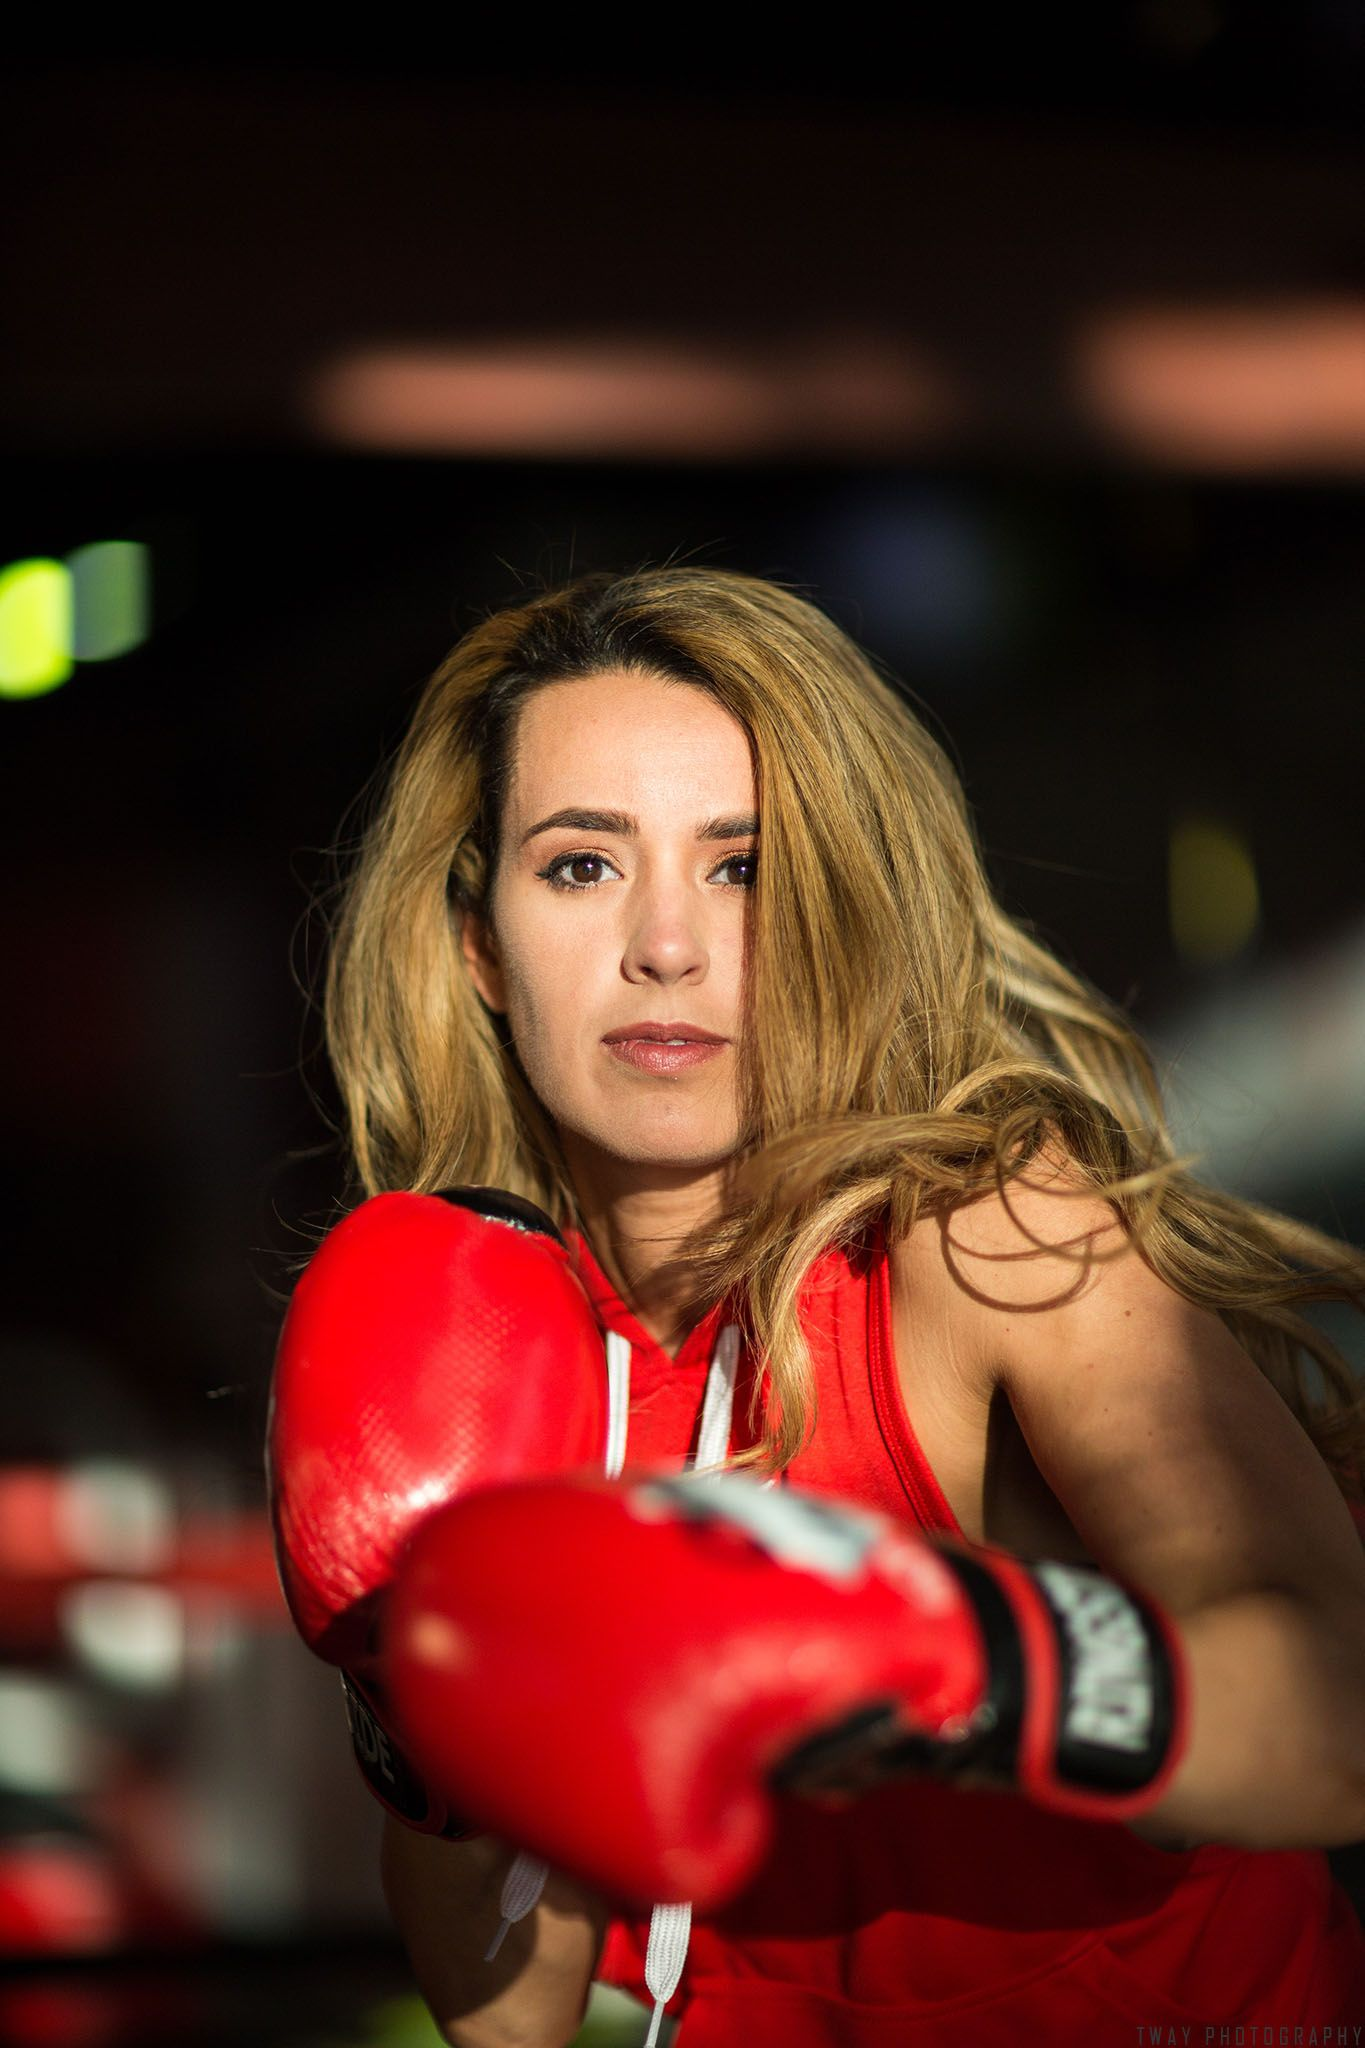 Female Boxing Poses Wiring Diagrams Preamp With Equalization Circuit Diagram Tradeoficcom Pose By Tway Photography Fitness Rh Pinterest Com Martha